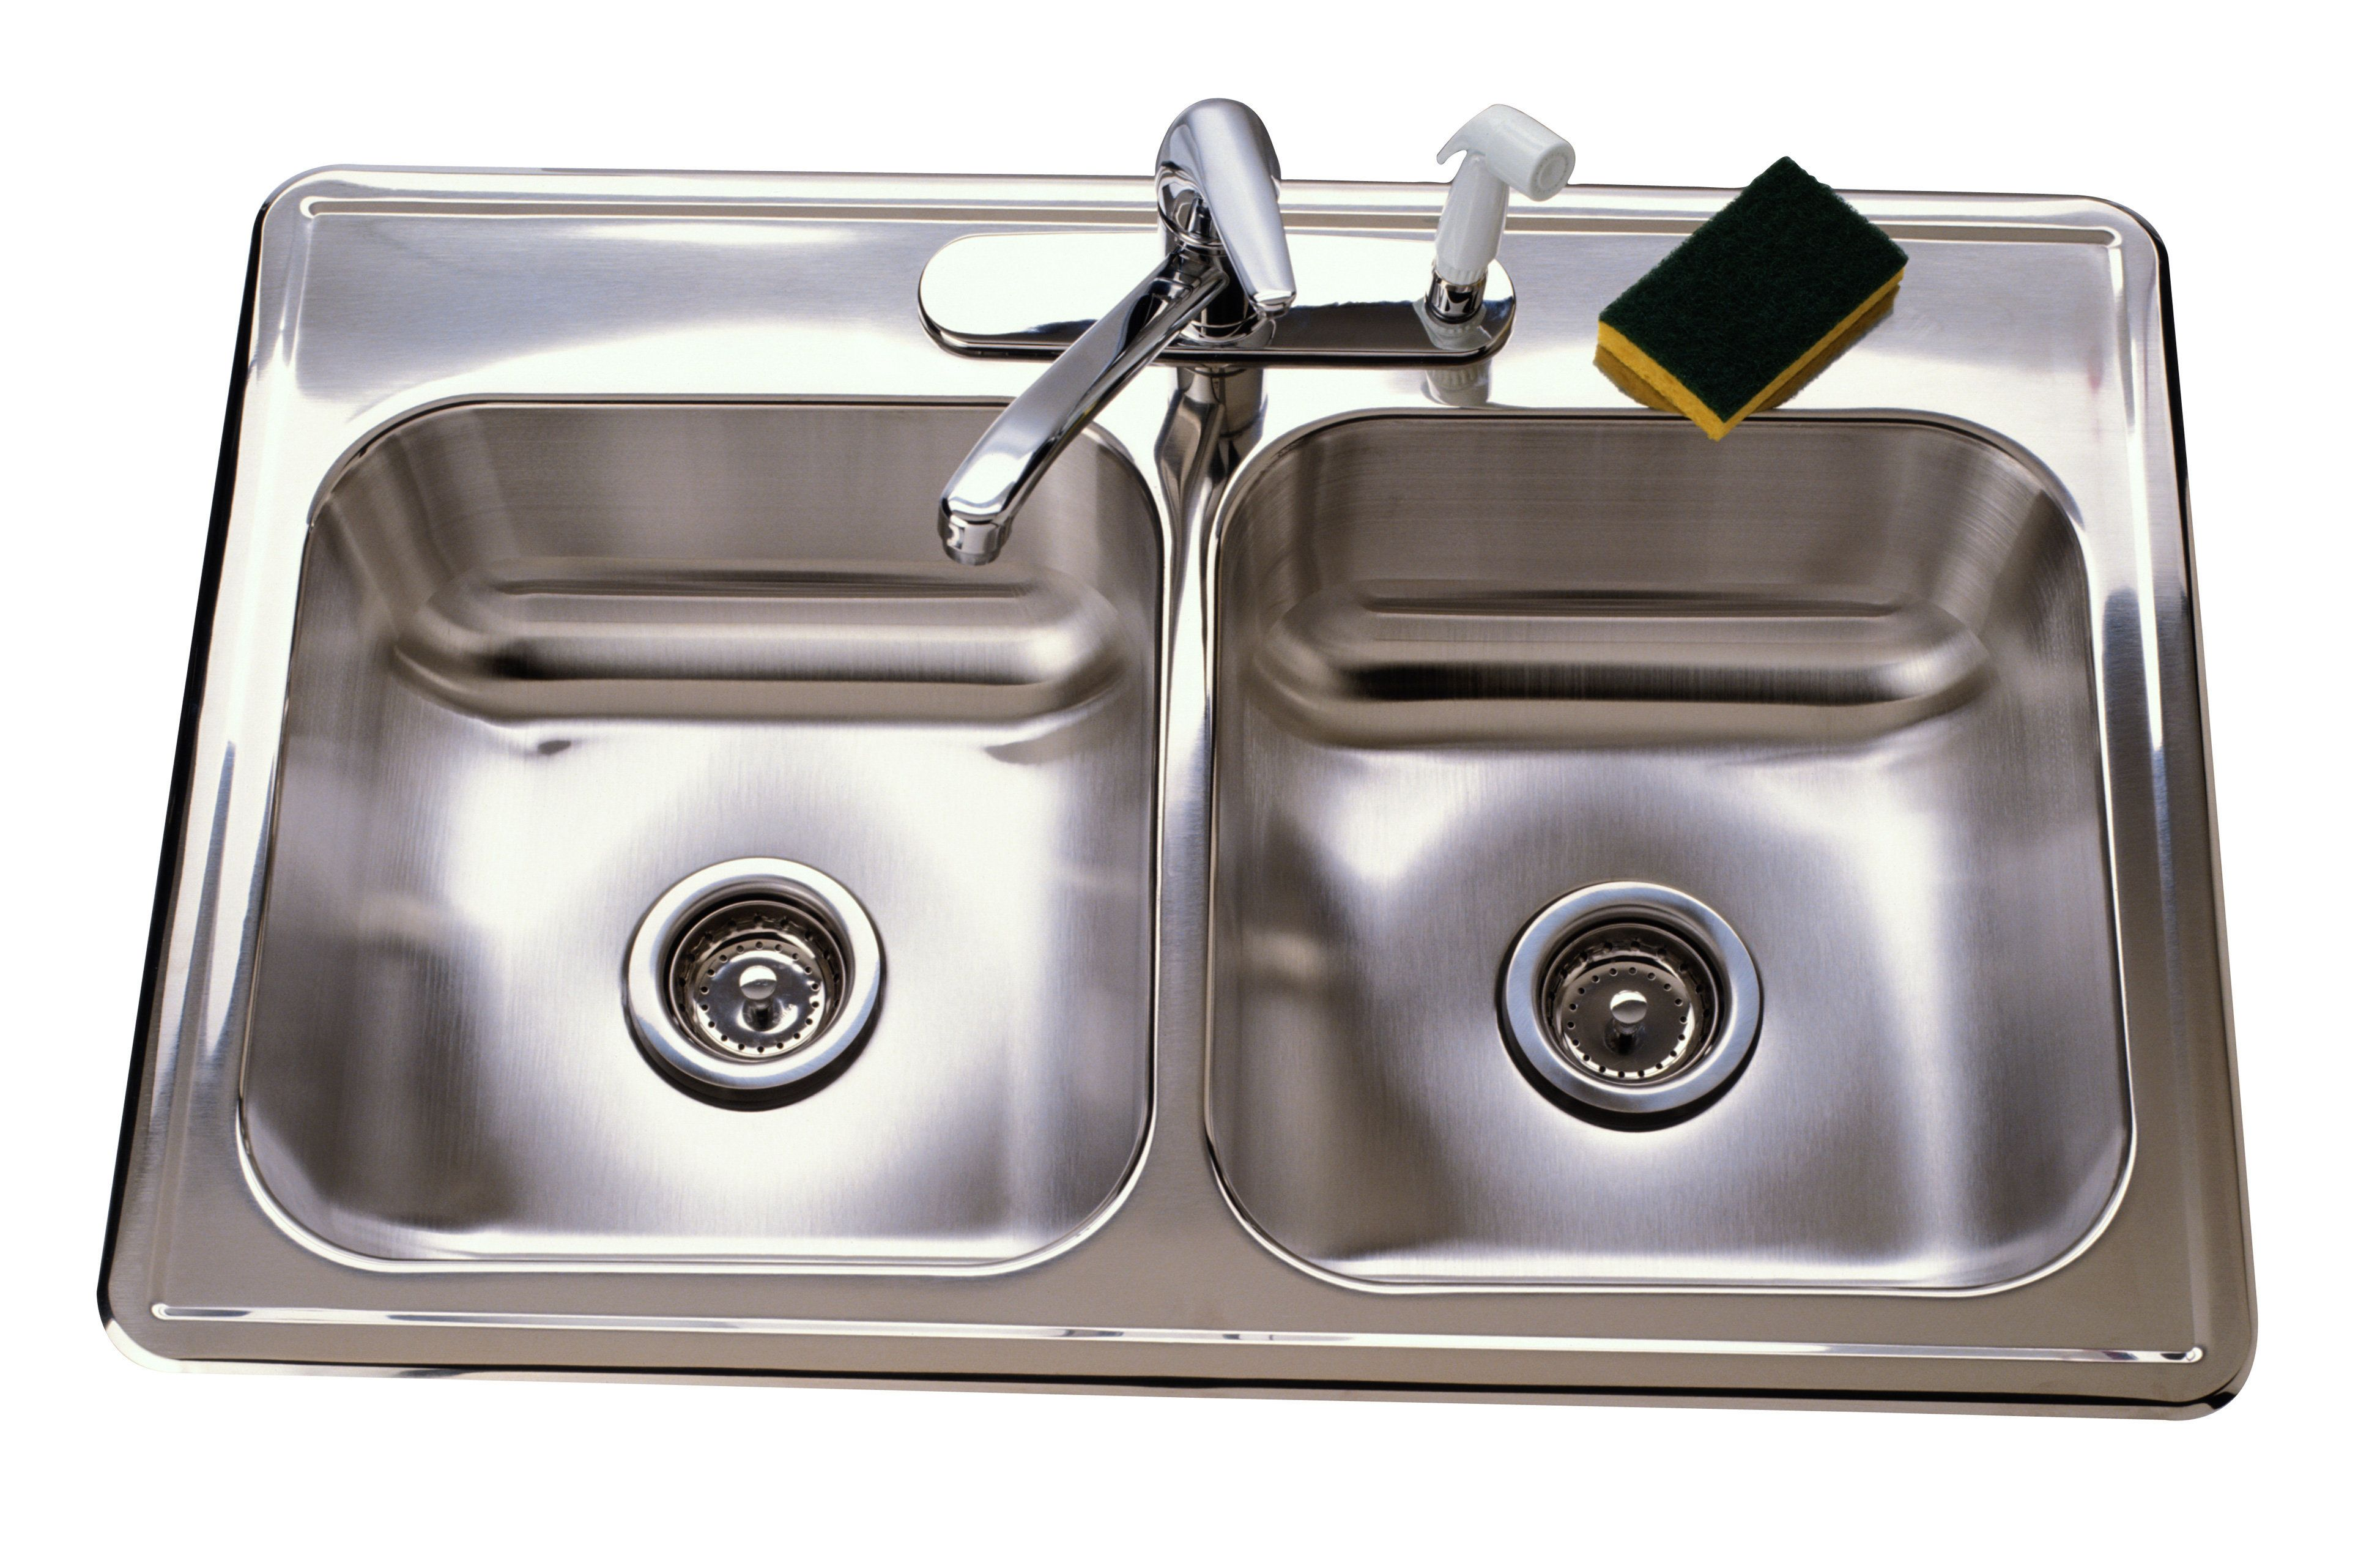 c squared studios|center|color|drain|faucet|green|horizontal|house works|interior|kitchen|lifestyle|metal|object|OS28|silver|sink|sponge|water|wet|white|house|works|VOL334|OS28021.JPG